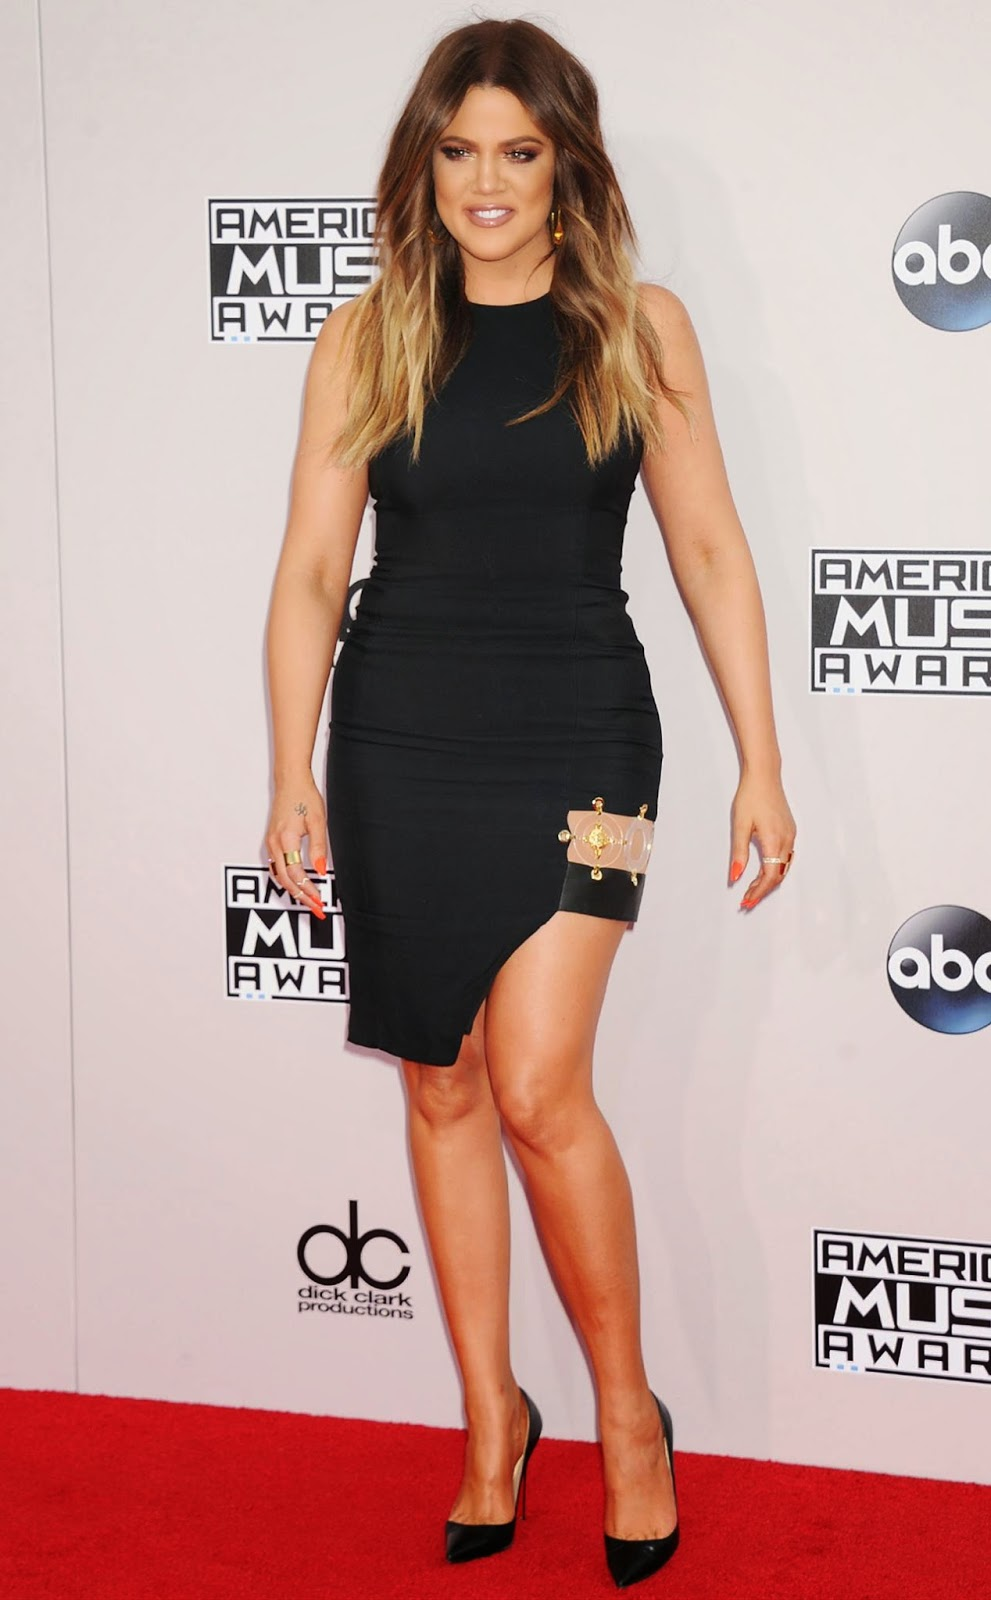 Khloe Kardashian shows off legs in a Versus Versace mini dress at the 2014 American Music Awards